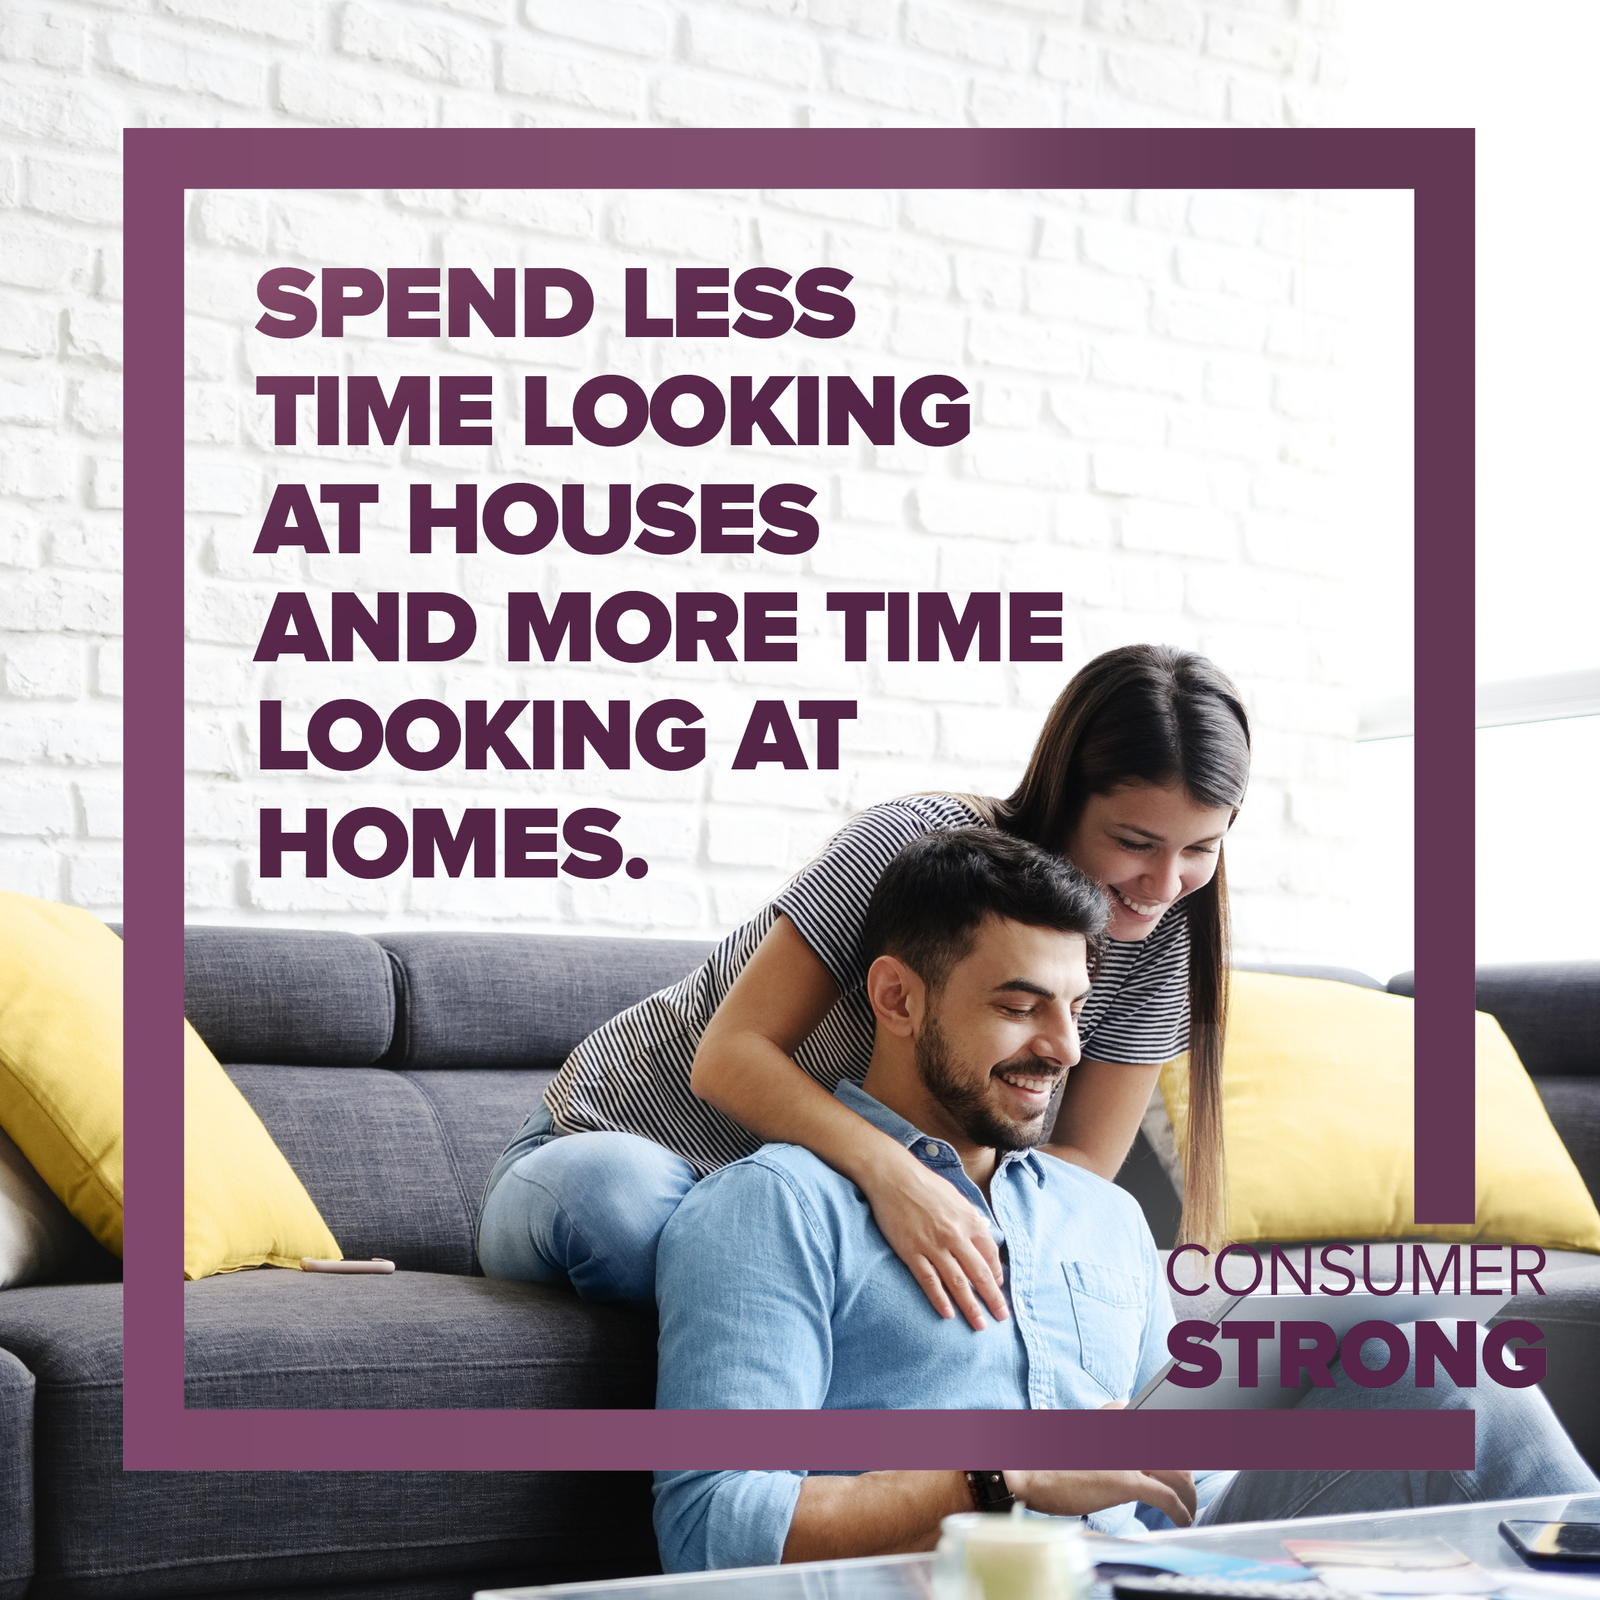 Consumer Strong - Spend Less Time Looking at Houses